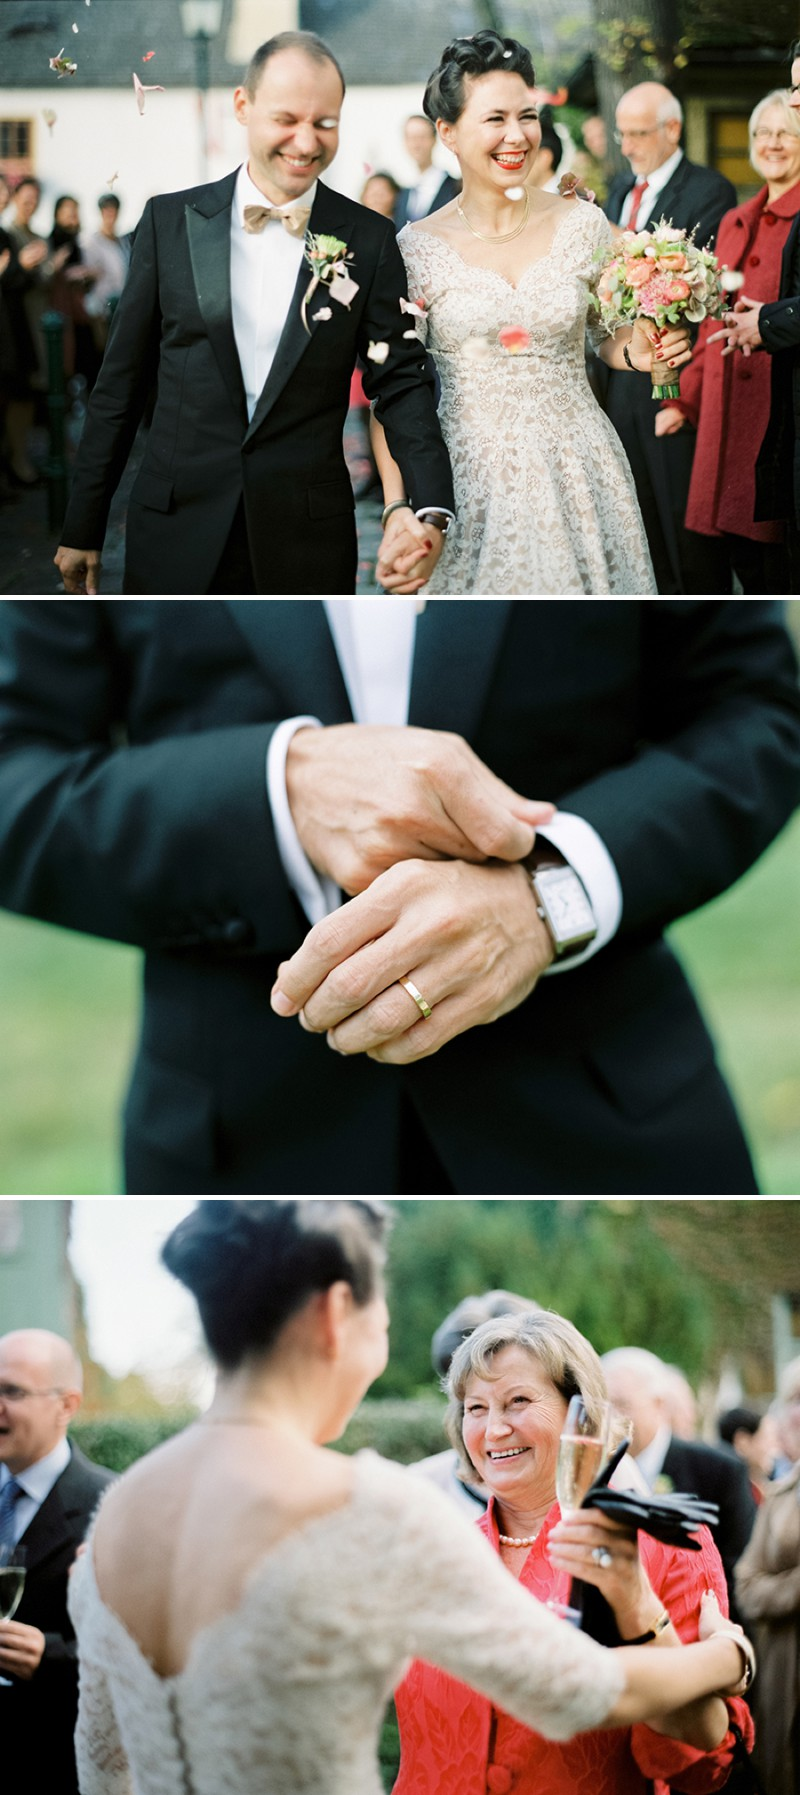 2c7cf3033d1 ... A Luxury And Intimate 1950s Style Autumn Wedding In Vienna With A Lena  Hoschek Dress And ...